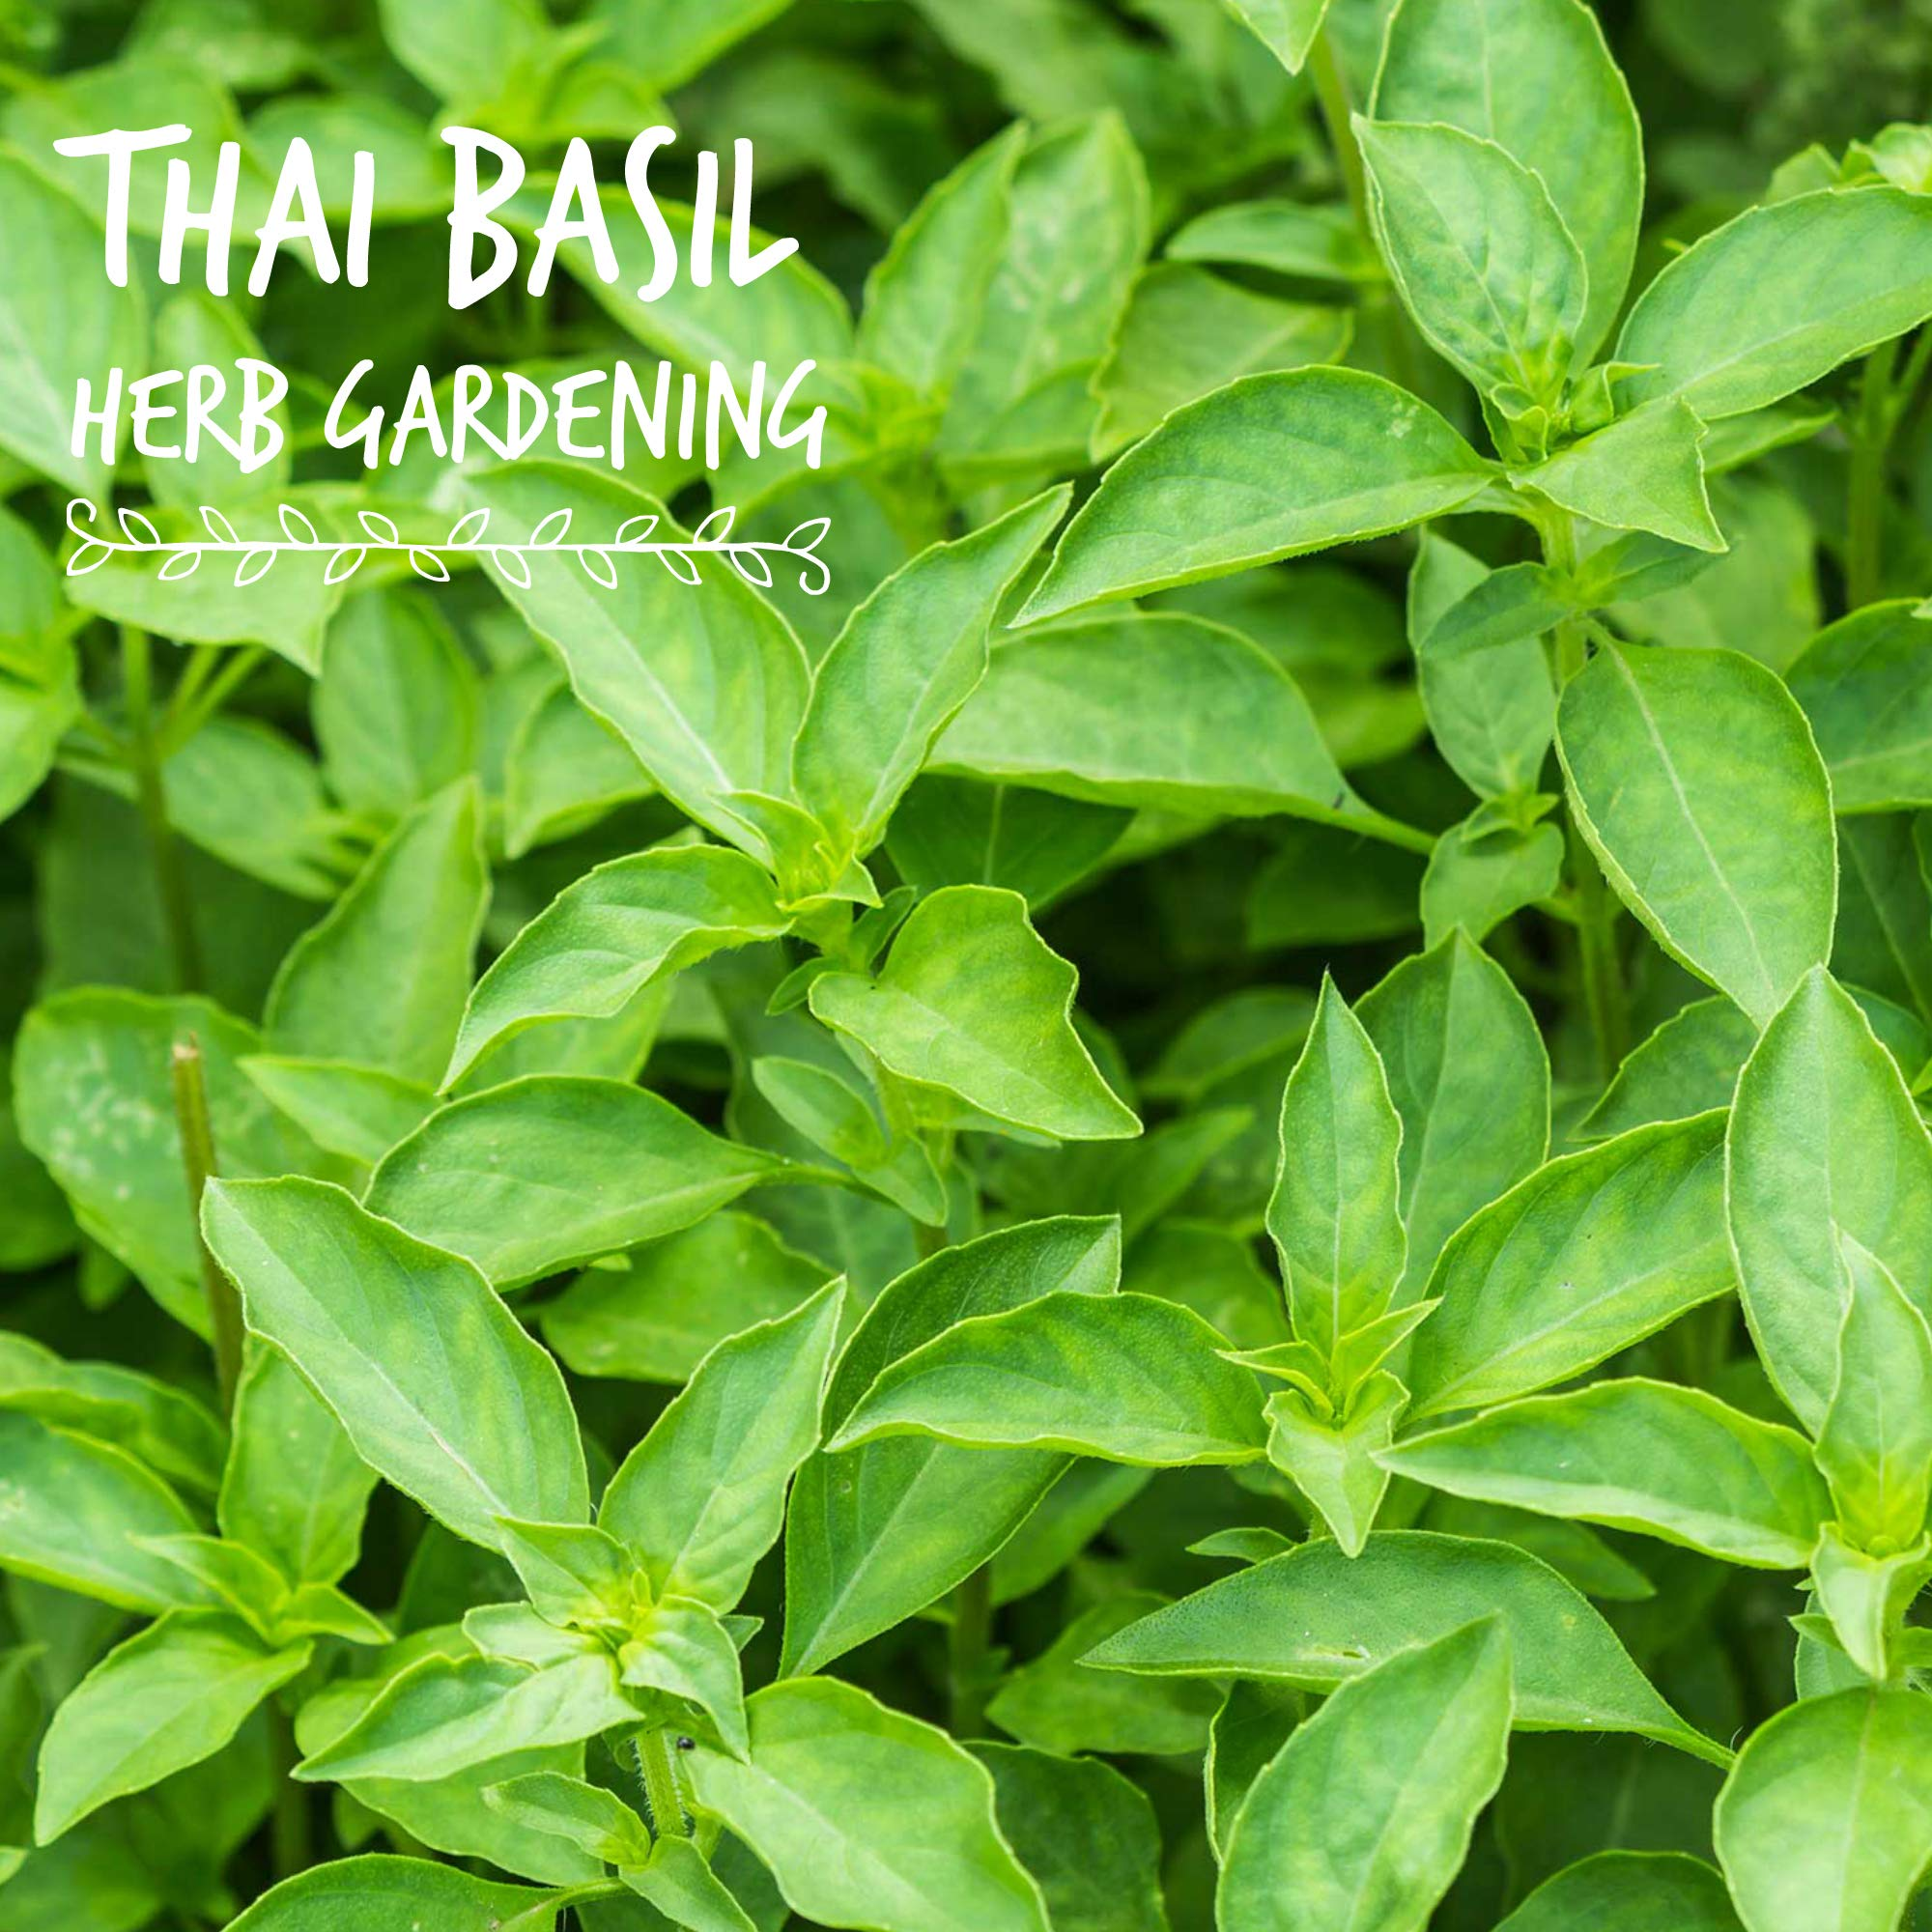 Thai Basil Seeds - Bulk Herb Seeds for Growing Microgreens, Indoor Gardening: Micro Greens Salad (1 Lb) by Mountain Valley Seed Company (Image #2)